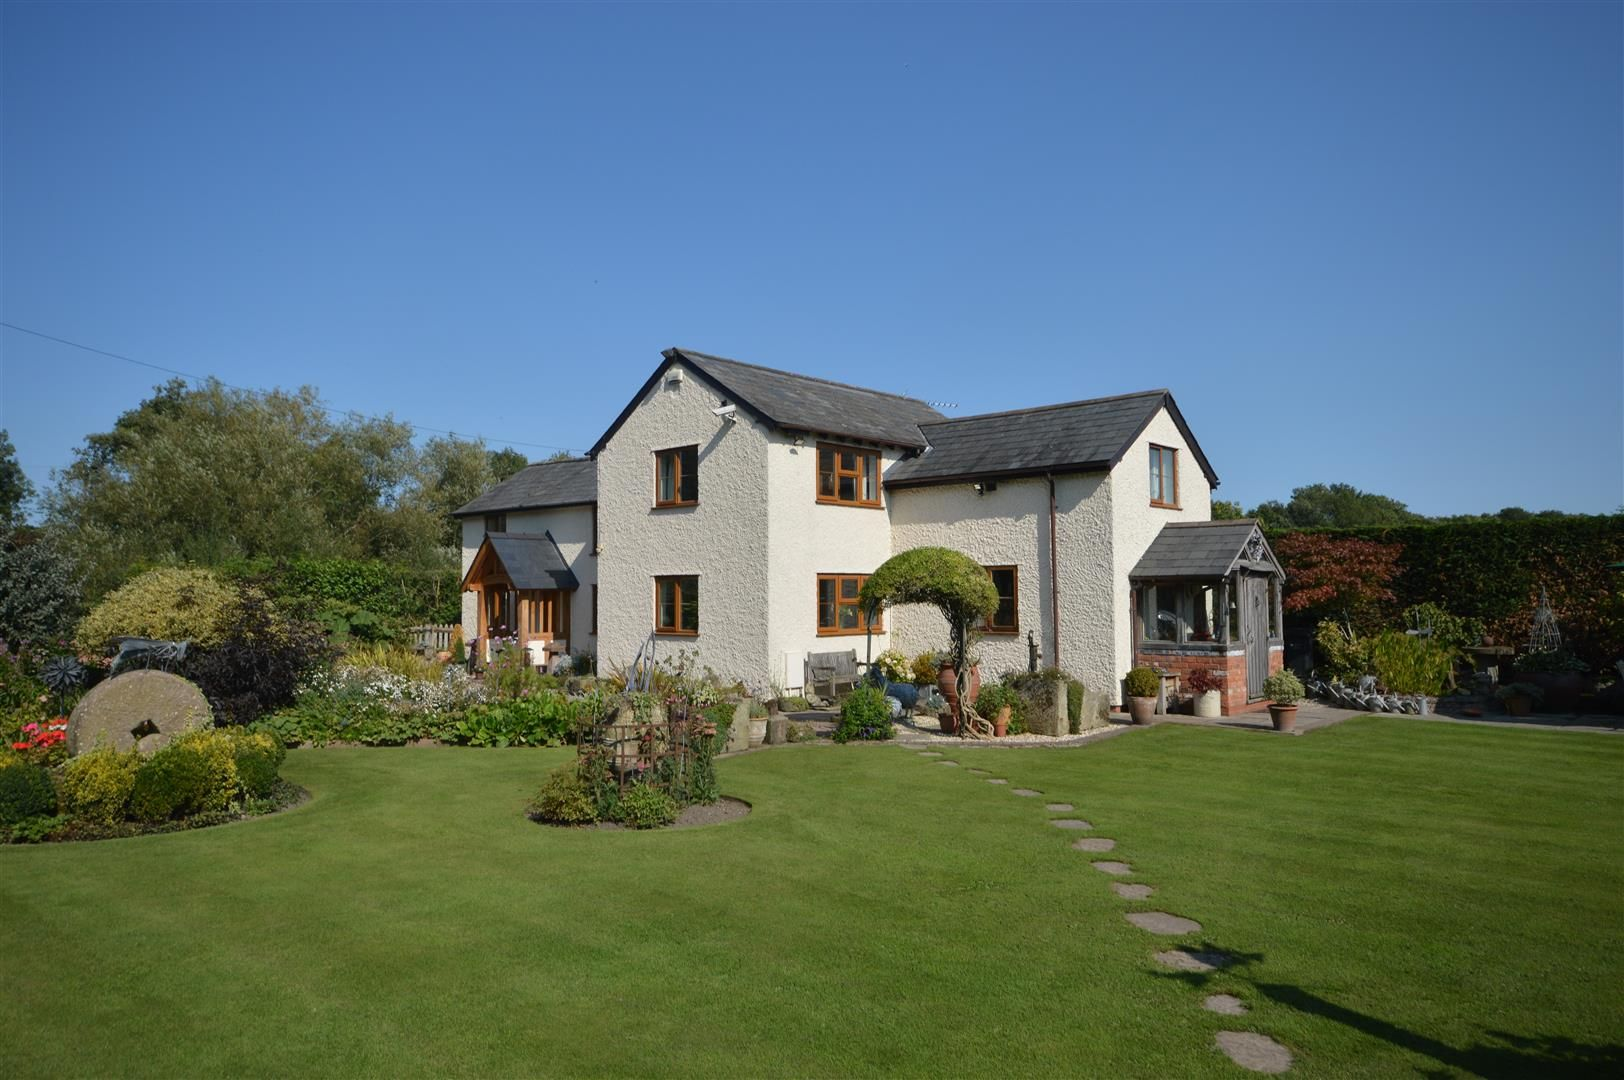 3 bed country house for sale in Kingsland, HR6